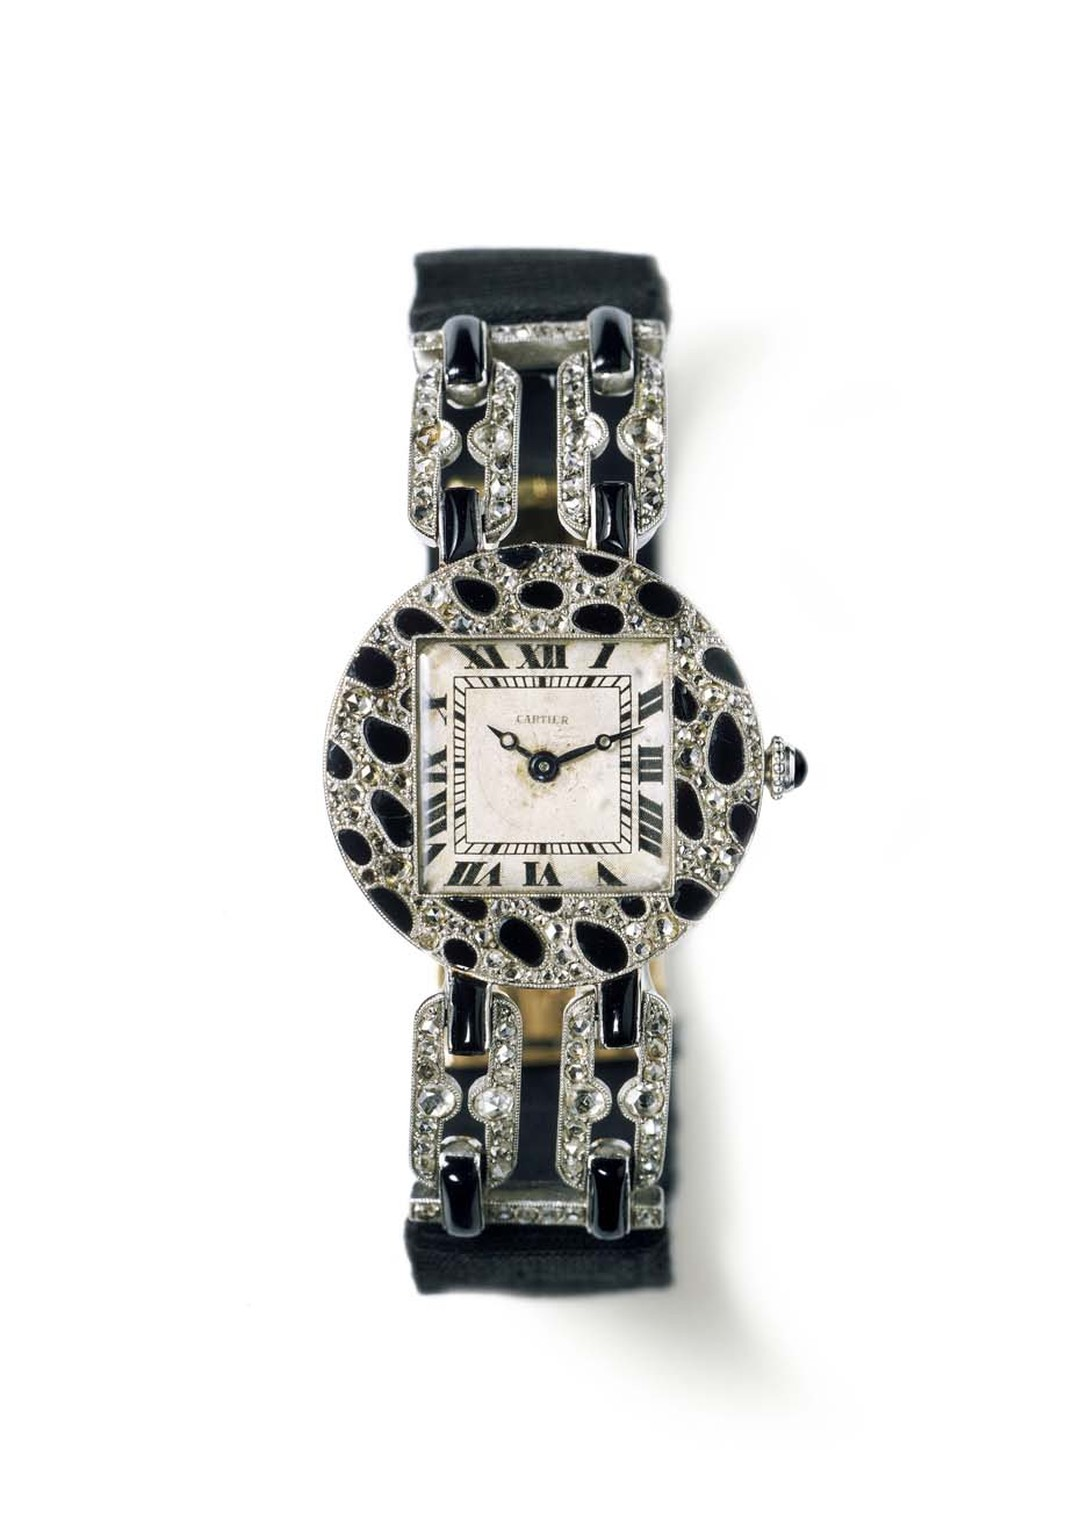 Cartier 1914 wristwatch with panther-spots motif features a round case in polished platinum, paved with rose-cut diamonds and onyx. Image by: Tania & Vincent © Cartier.